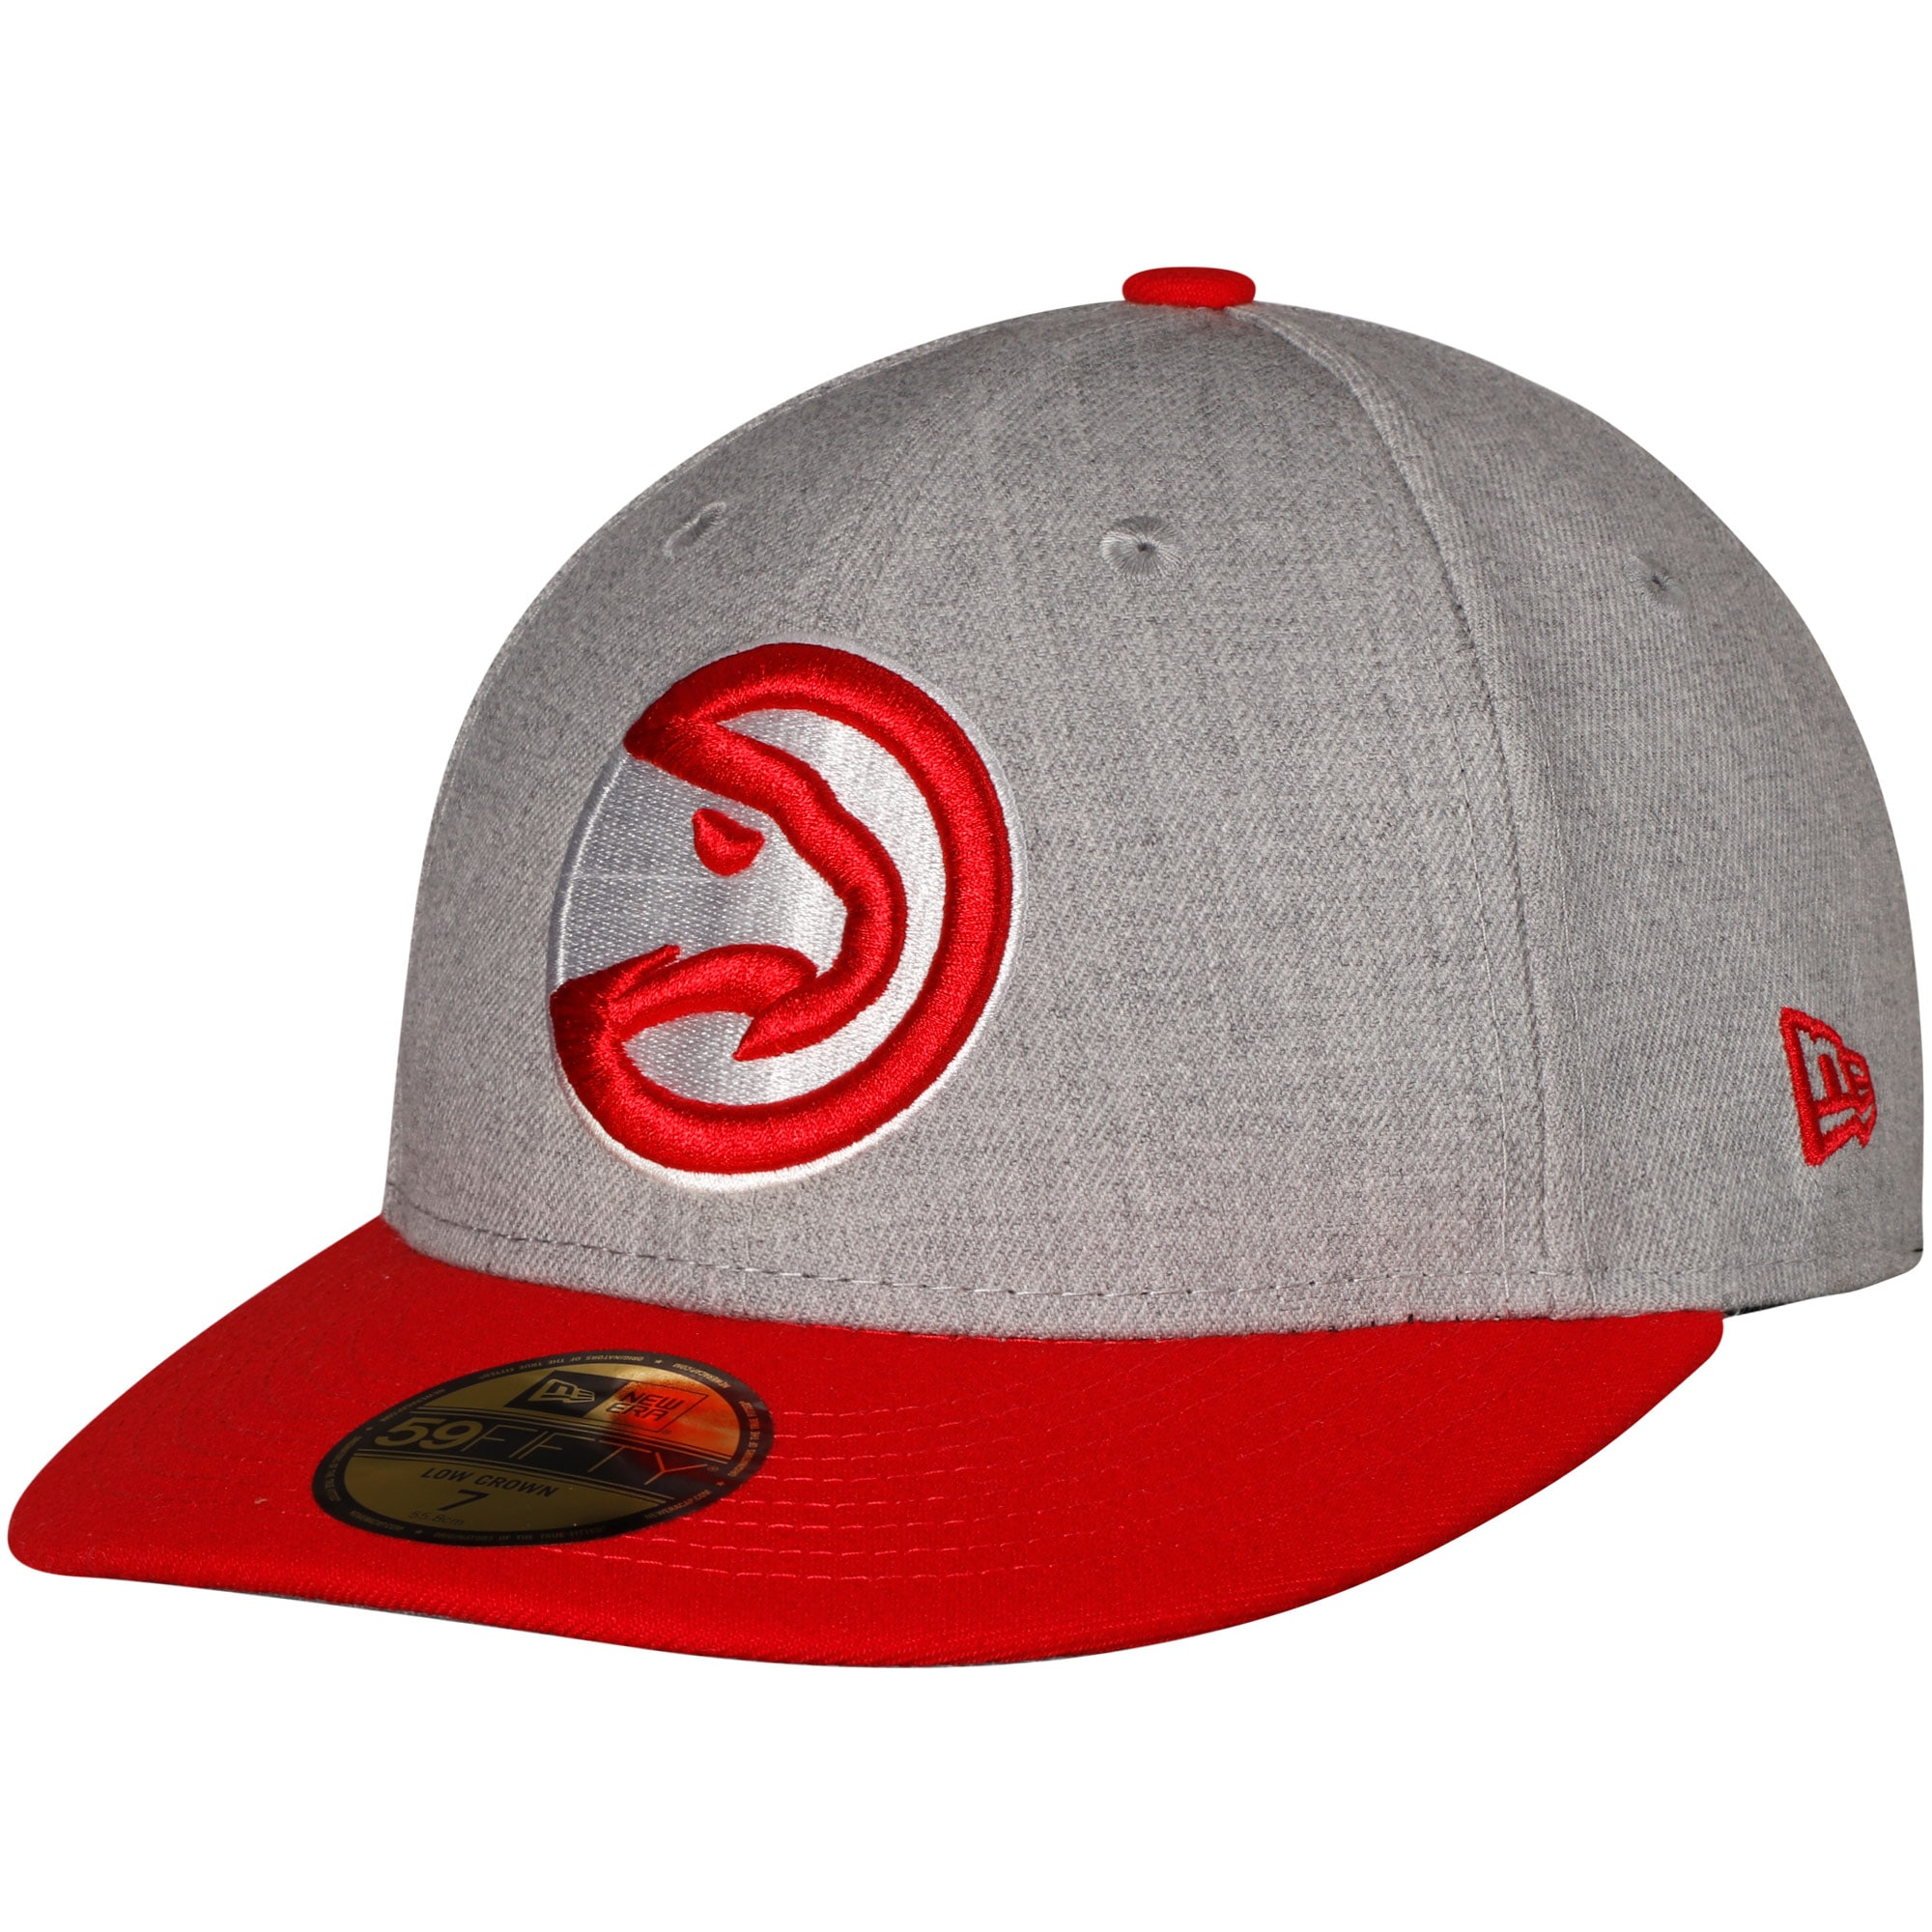 Atlanta Hawks New Era Two-Tone Low Profile 59FIFTY Fitted Hat - Heathered Gray/Red